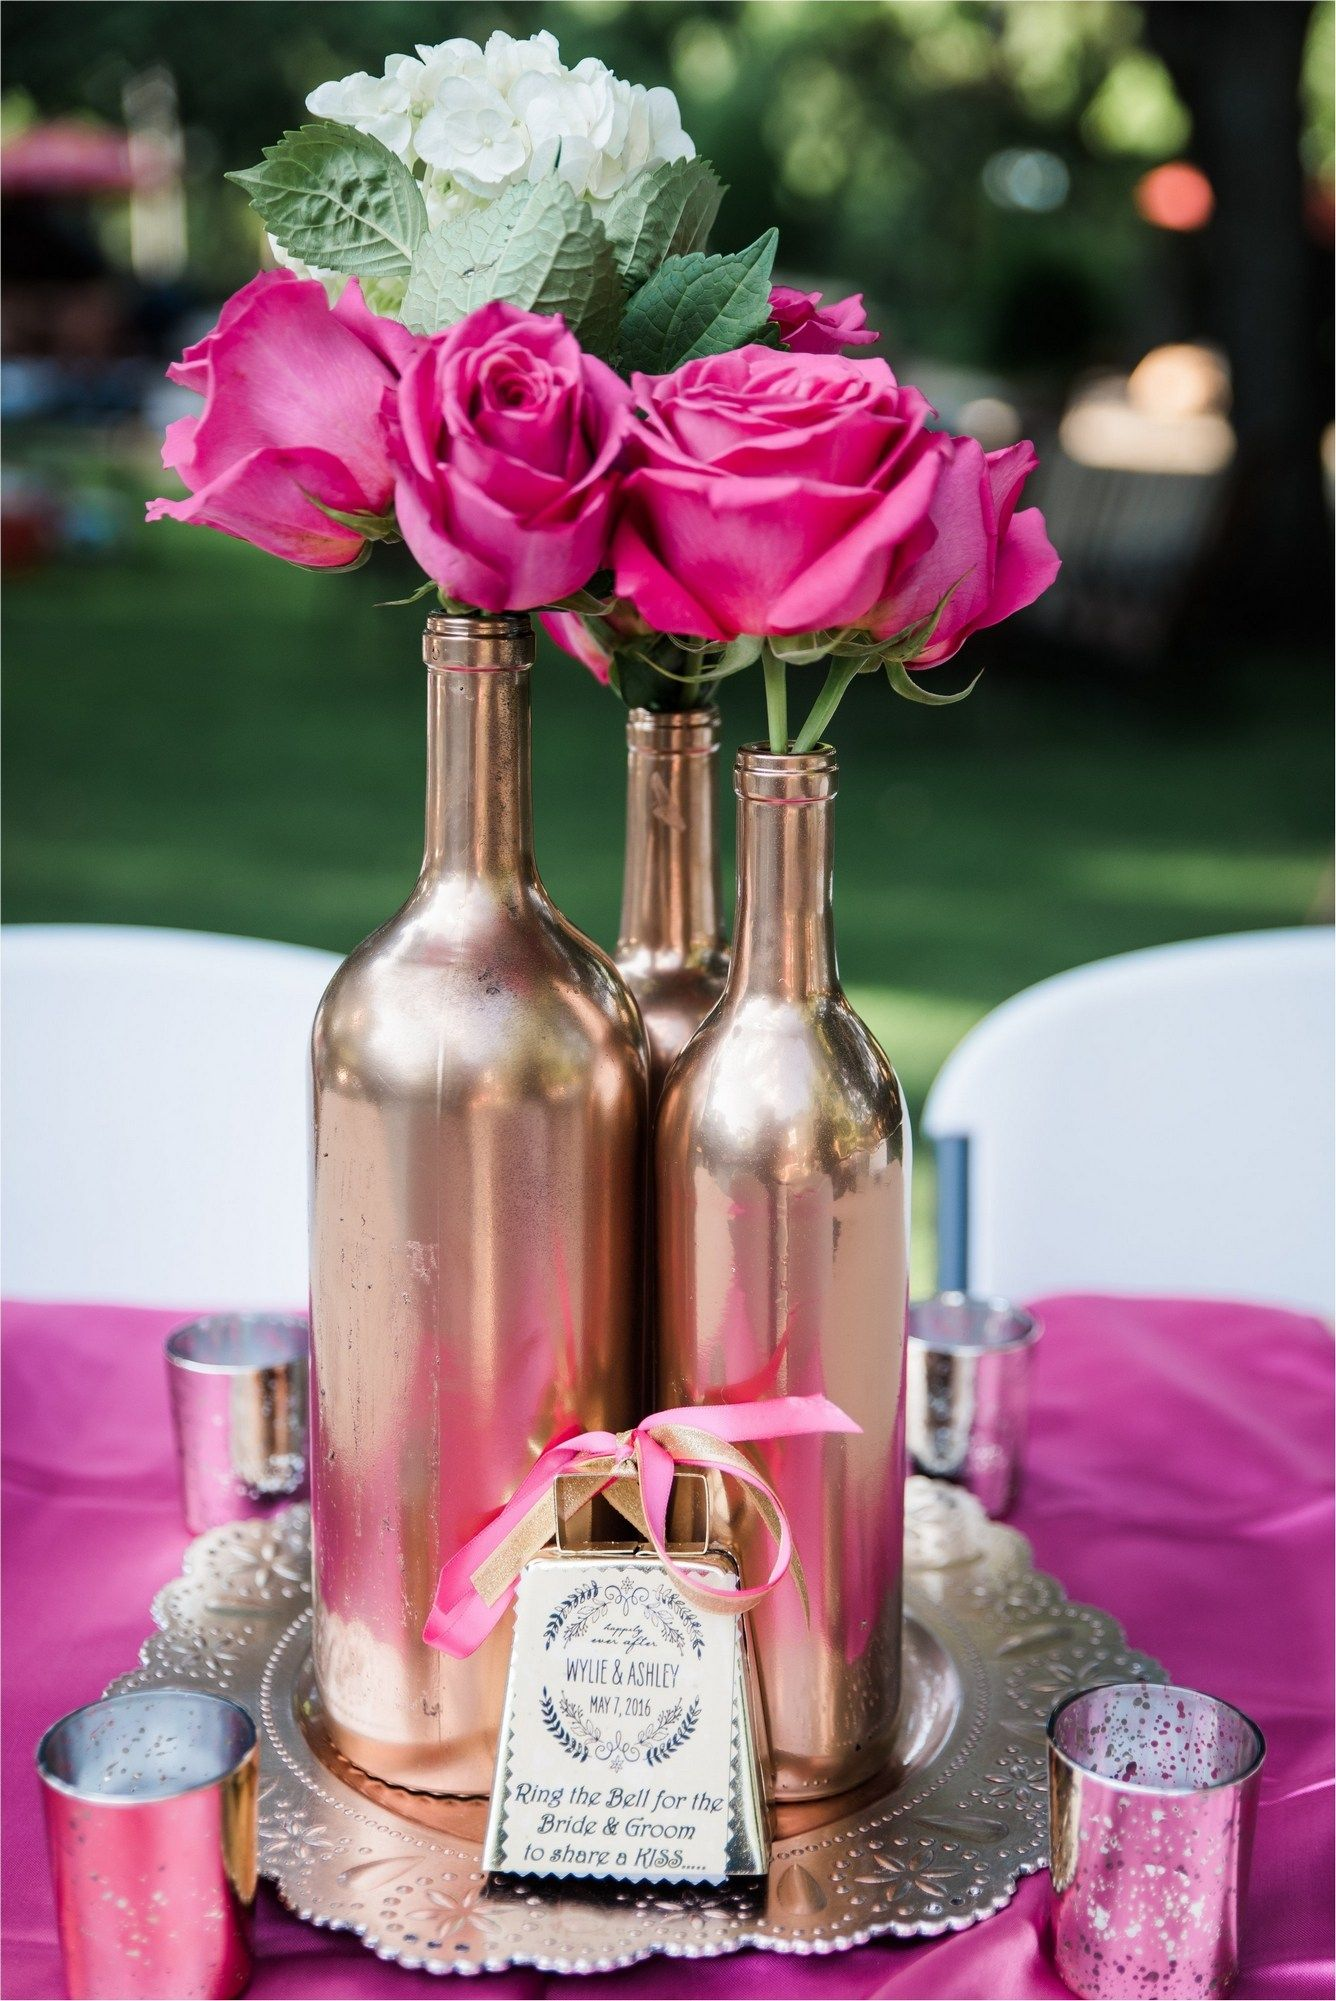 Wedding decorations gold and pink  Rose Gold Quinceanera Wedding Decorations   Decoration Rose